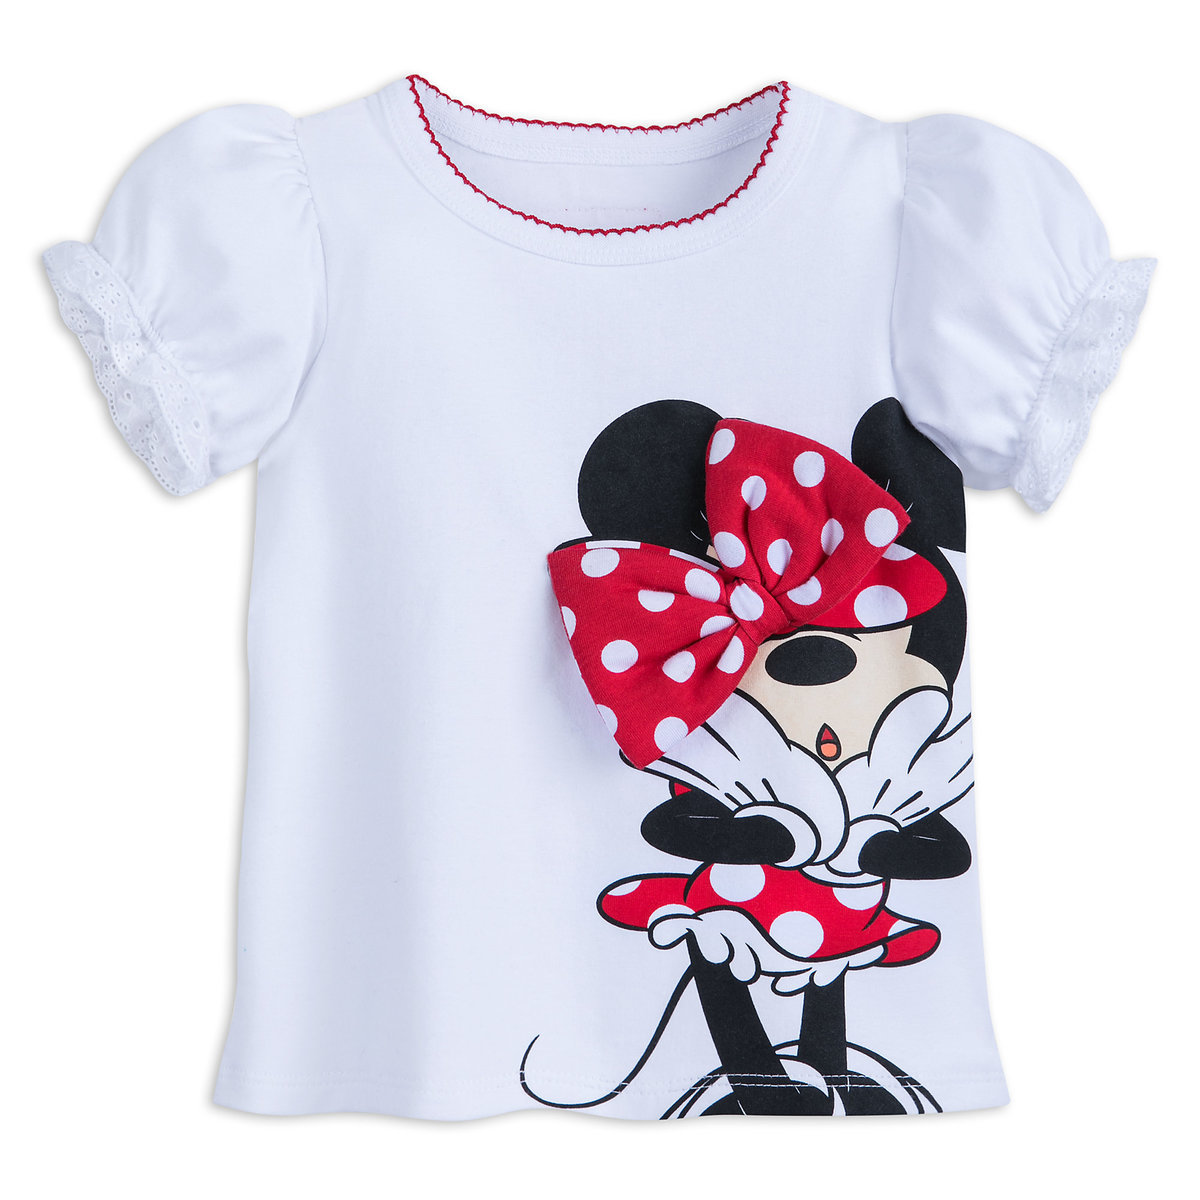 65c122633465 Product Image of Minnie Mouse Bow T-Shirt for Girls - Walt Disney World #